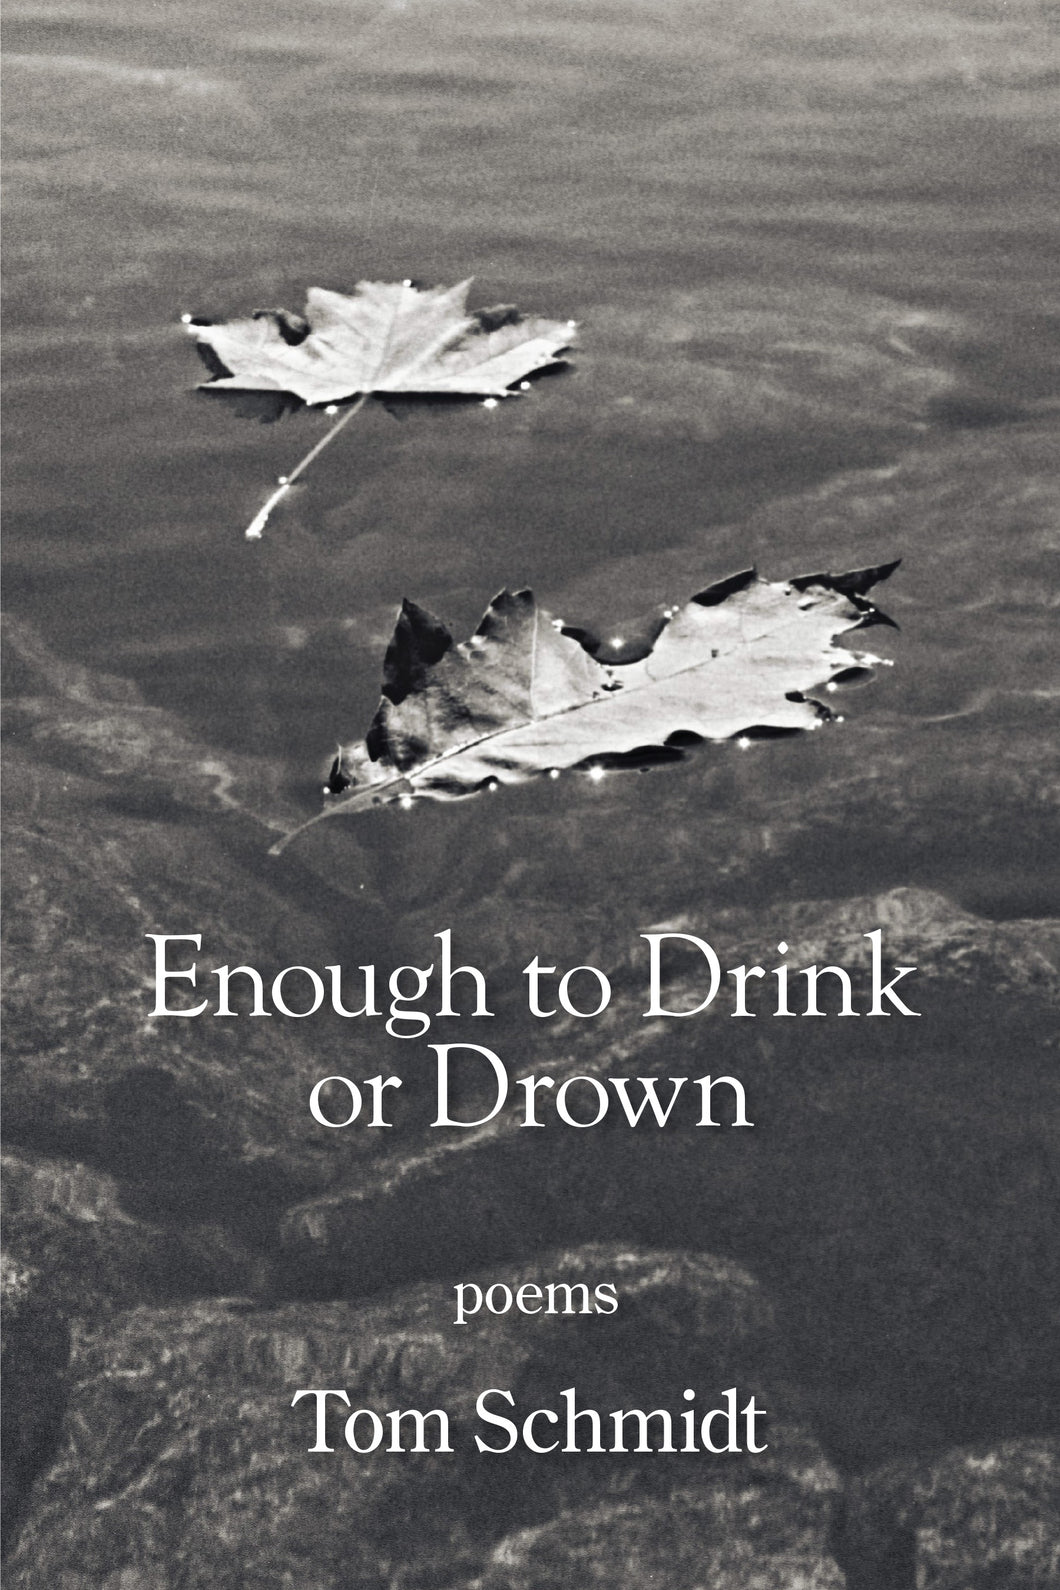 Enough to Drink or Drown